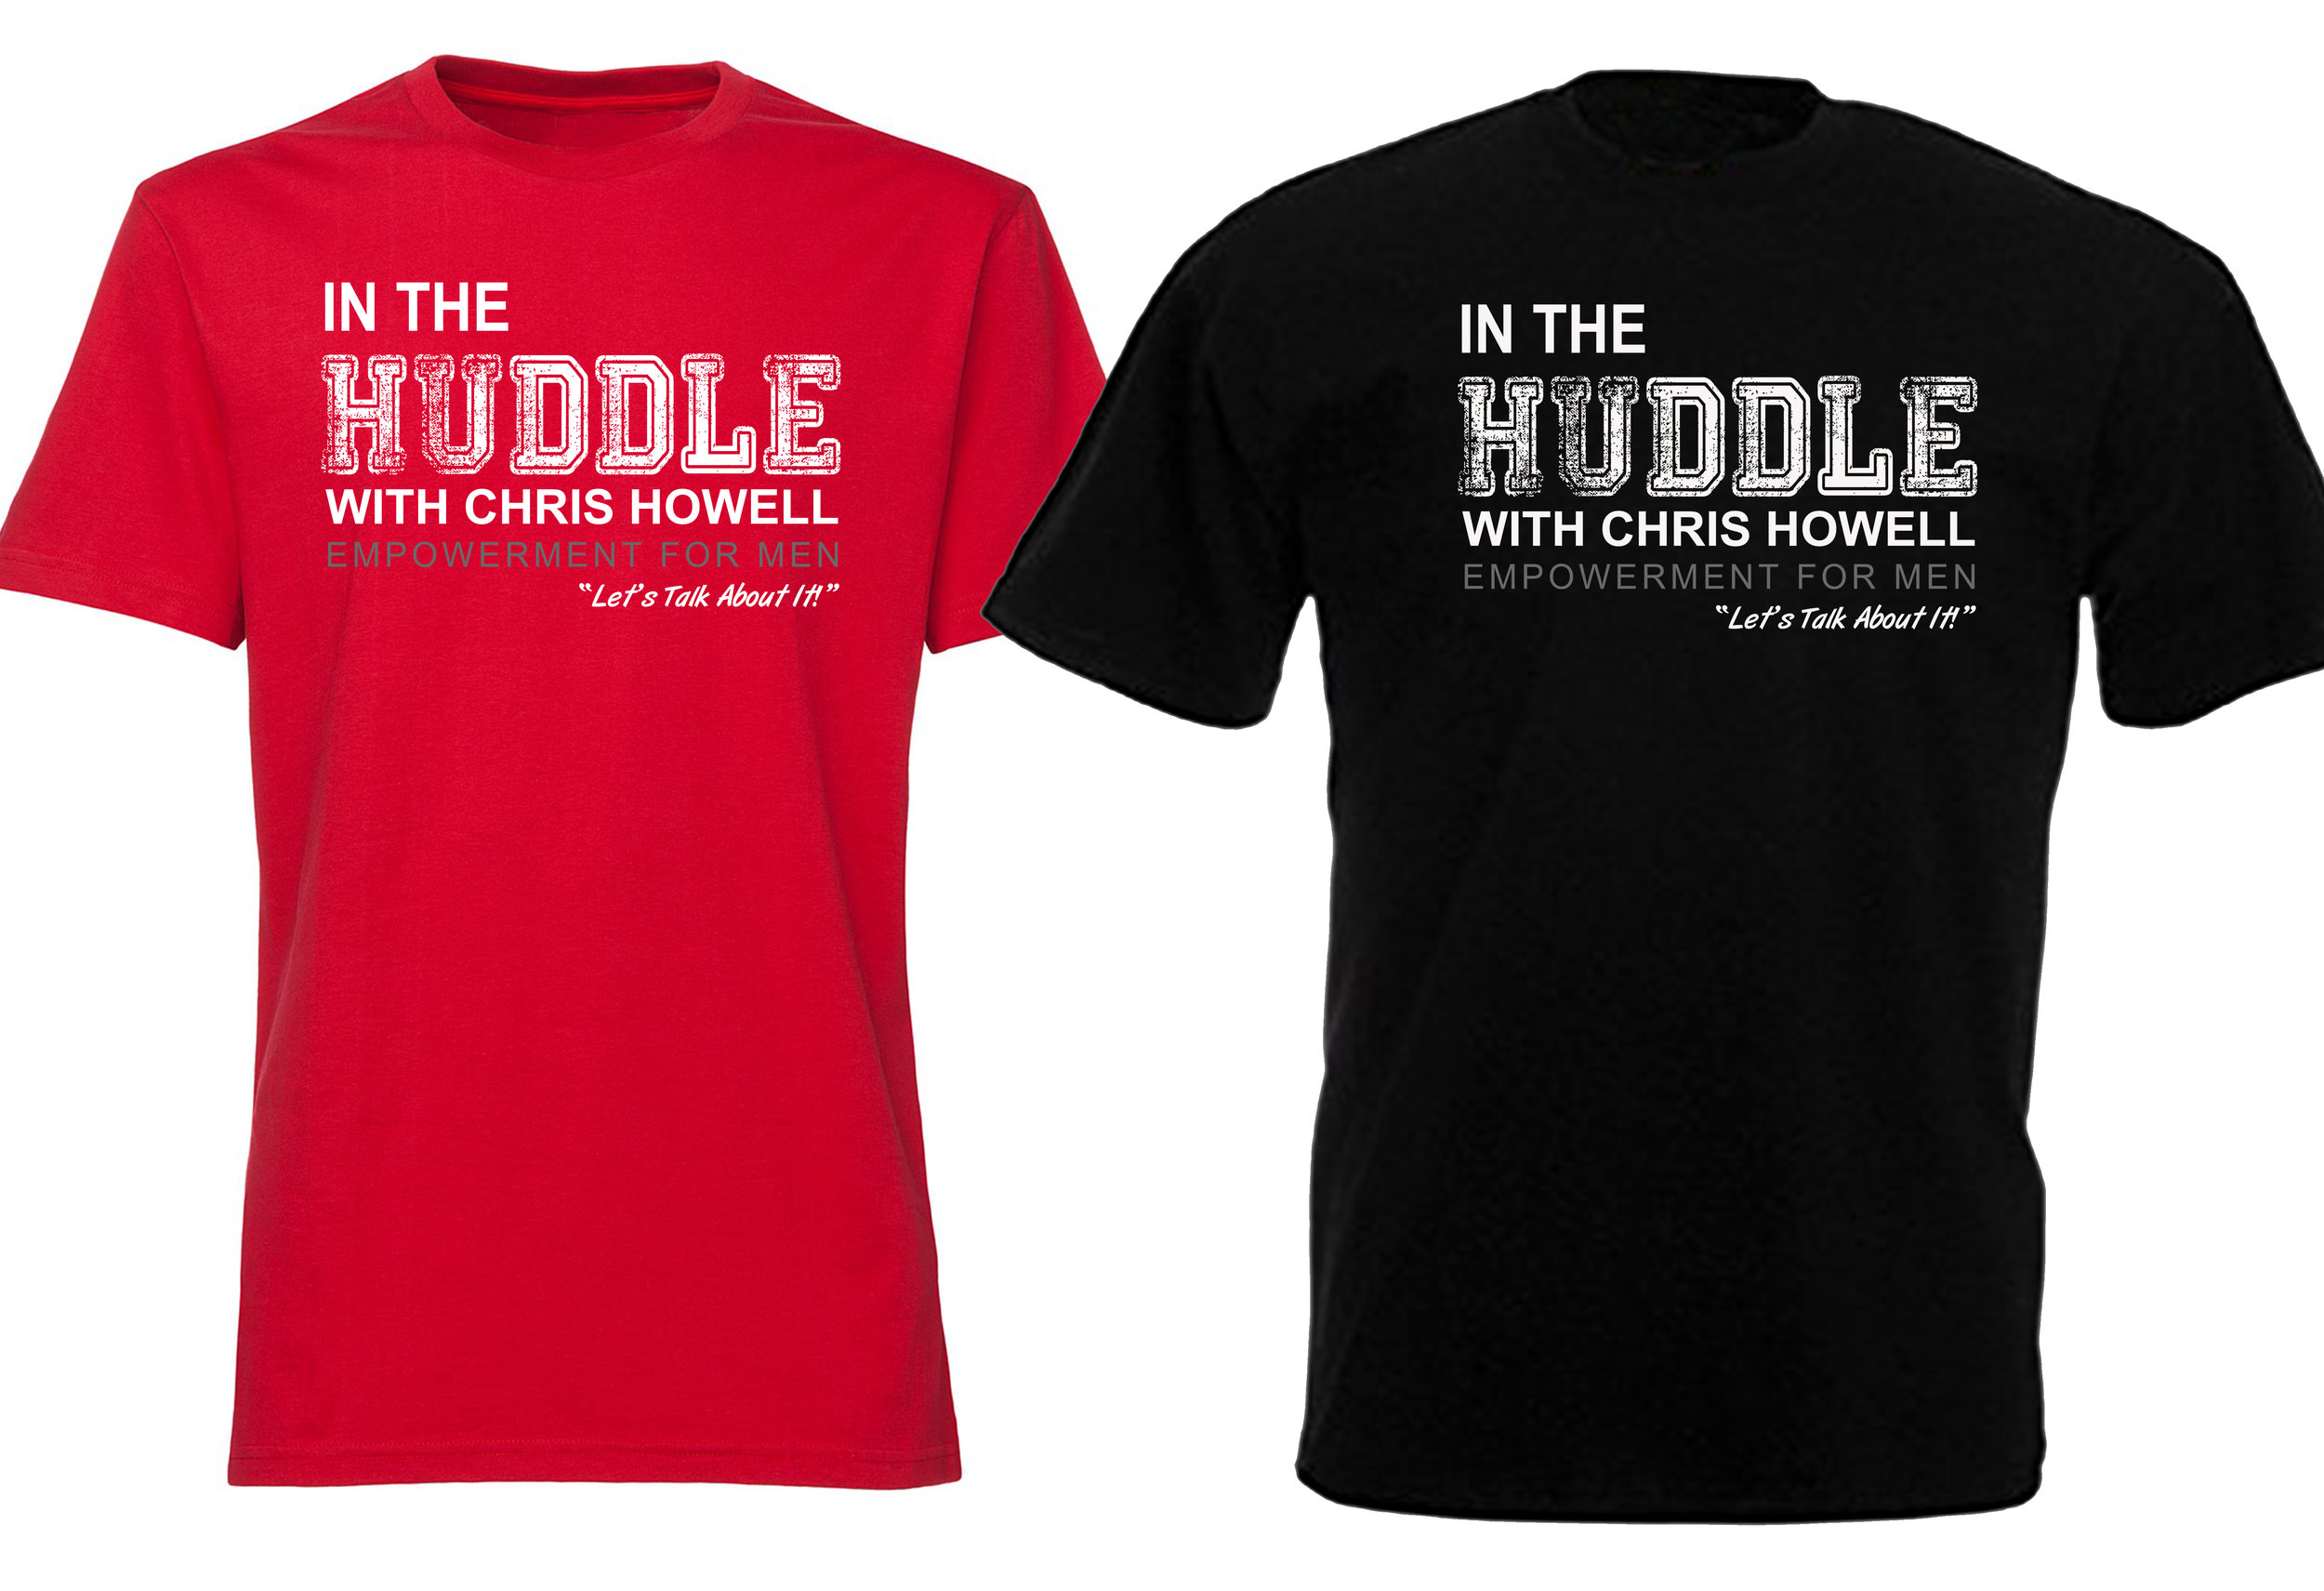 In the huddle t-shirts.jpg